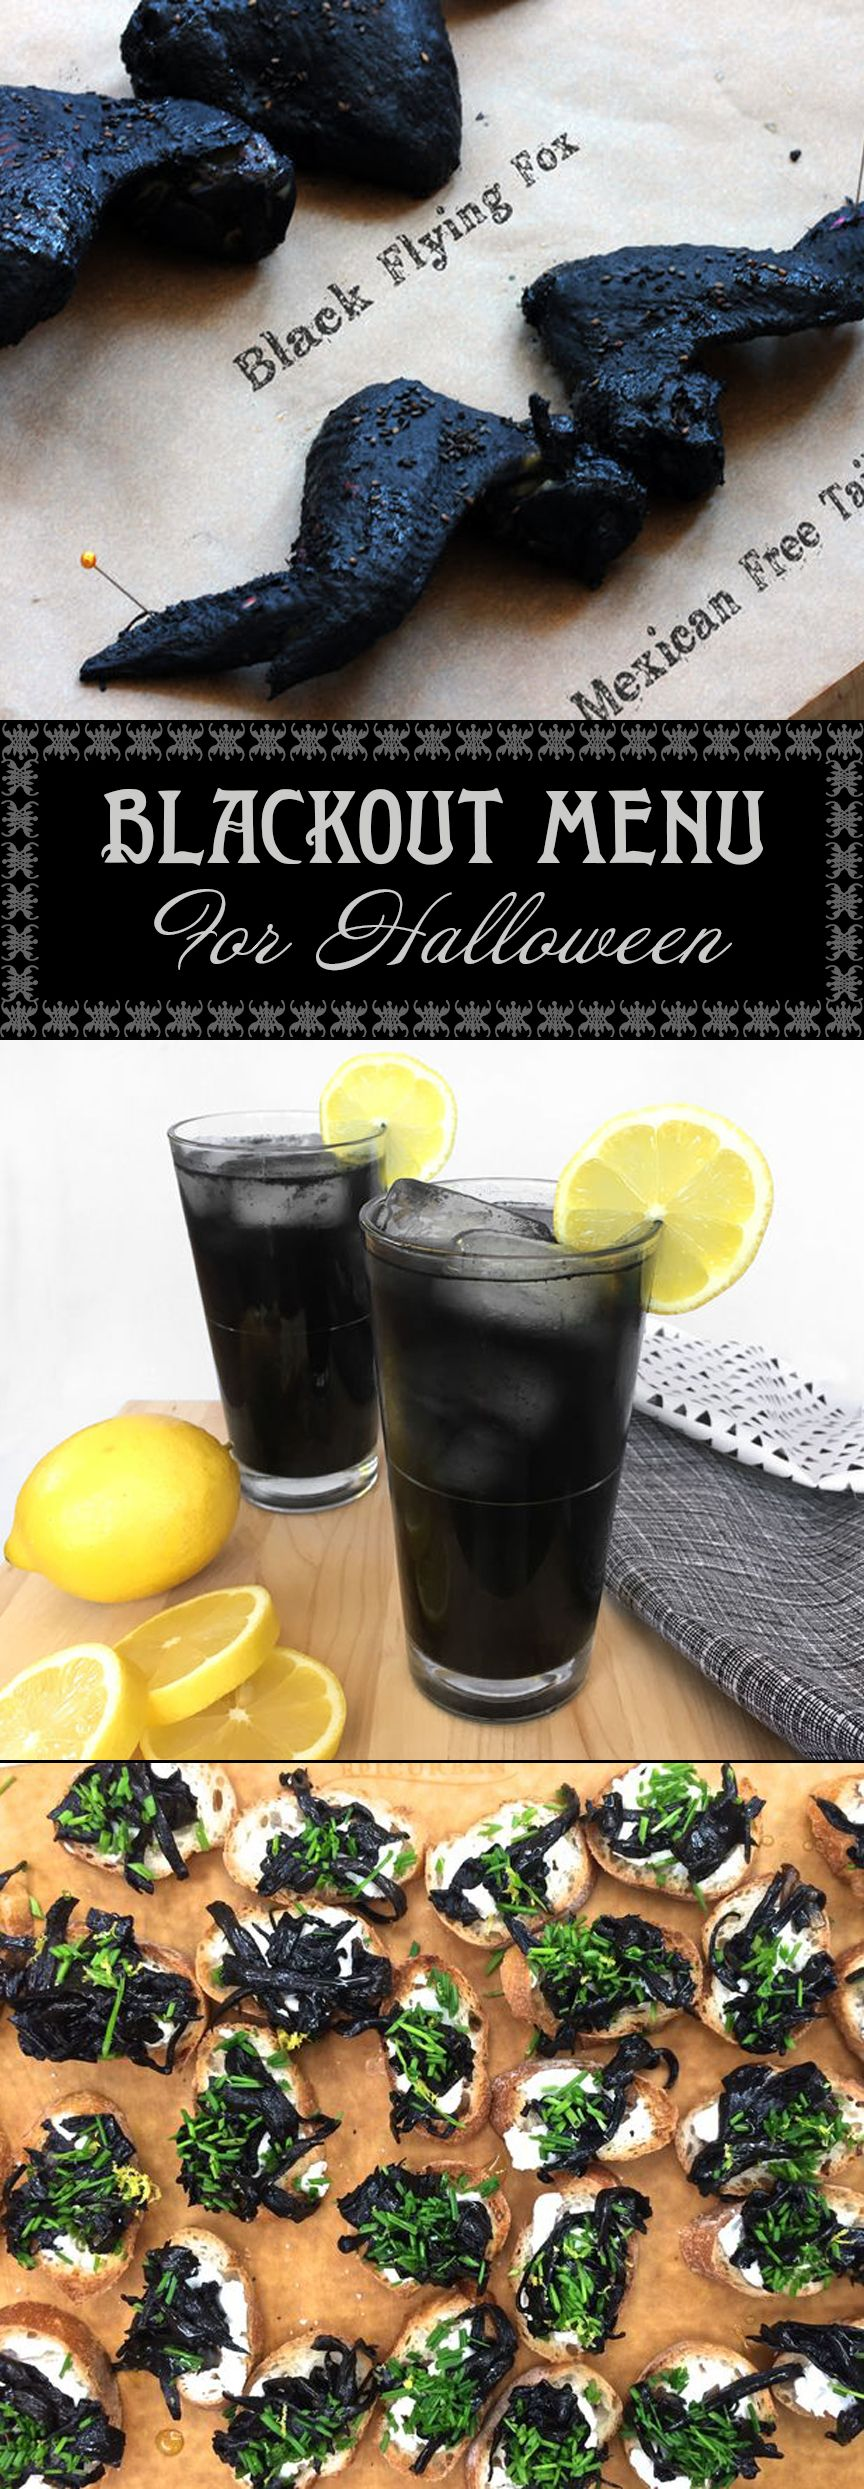 Blackout Menu for Halloween Halloween food for party